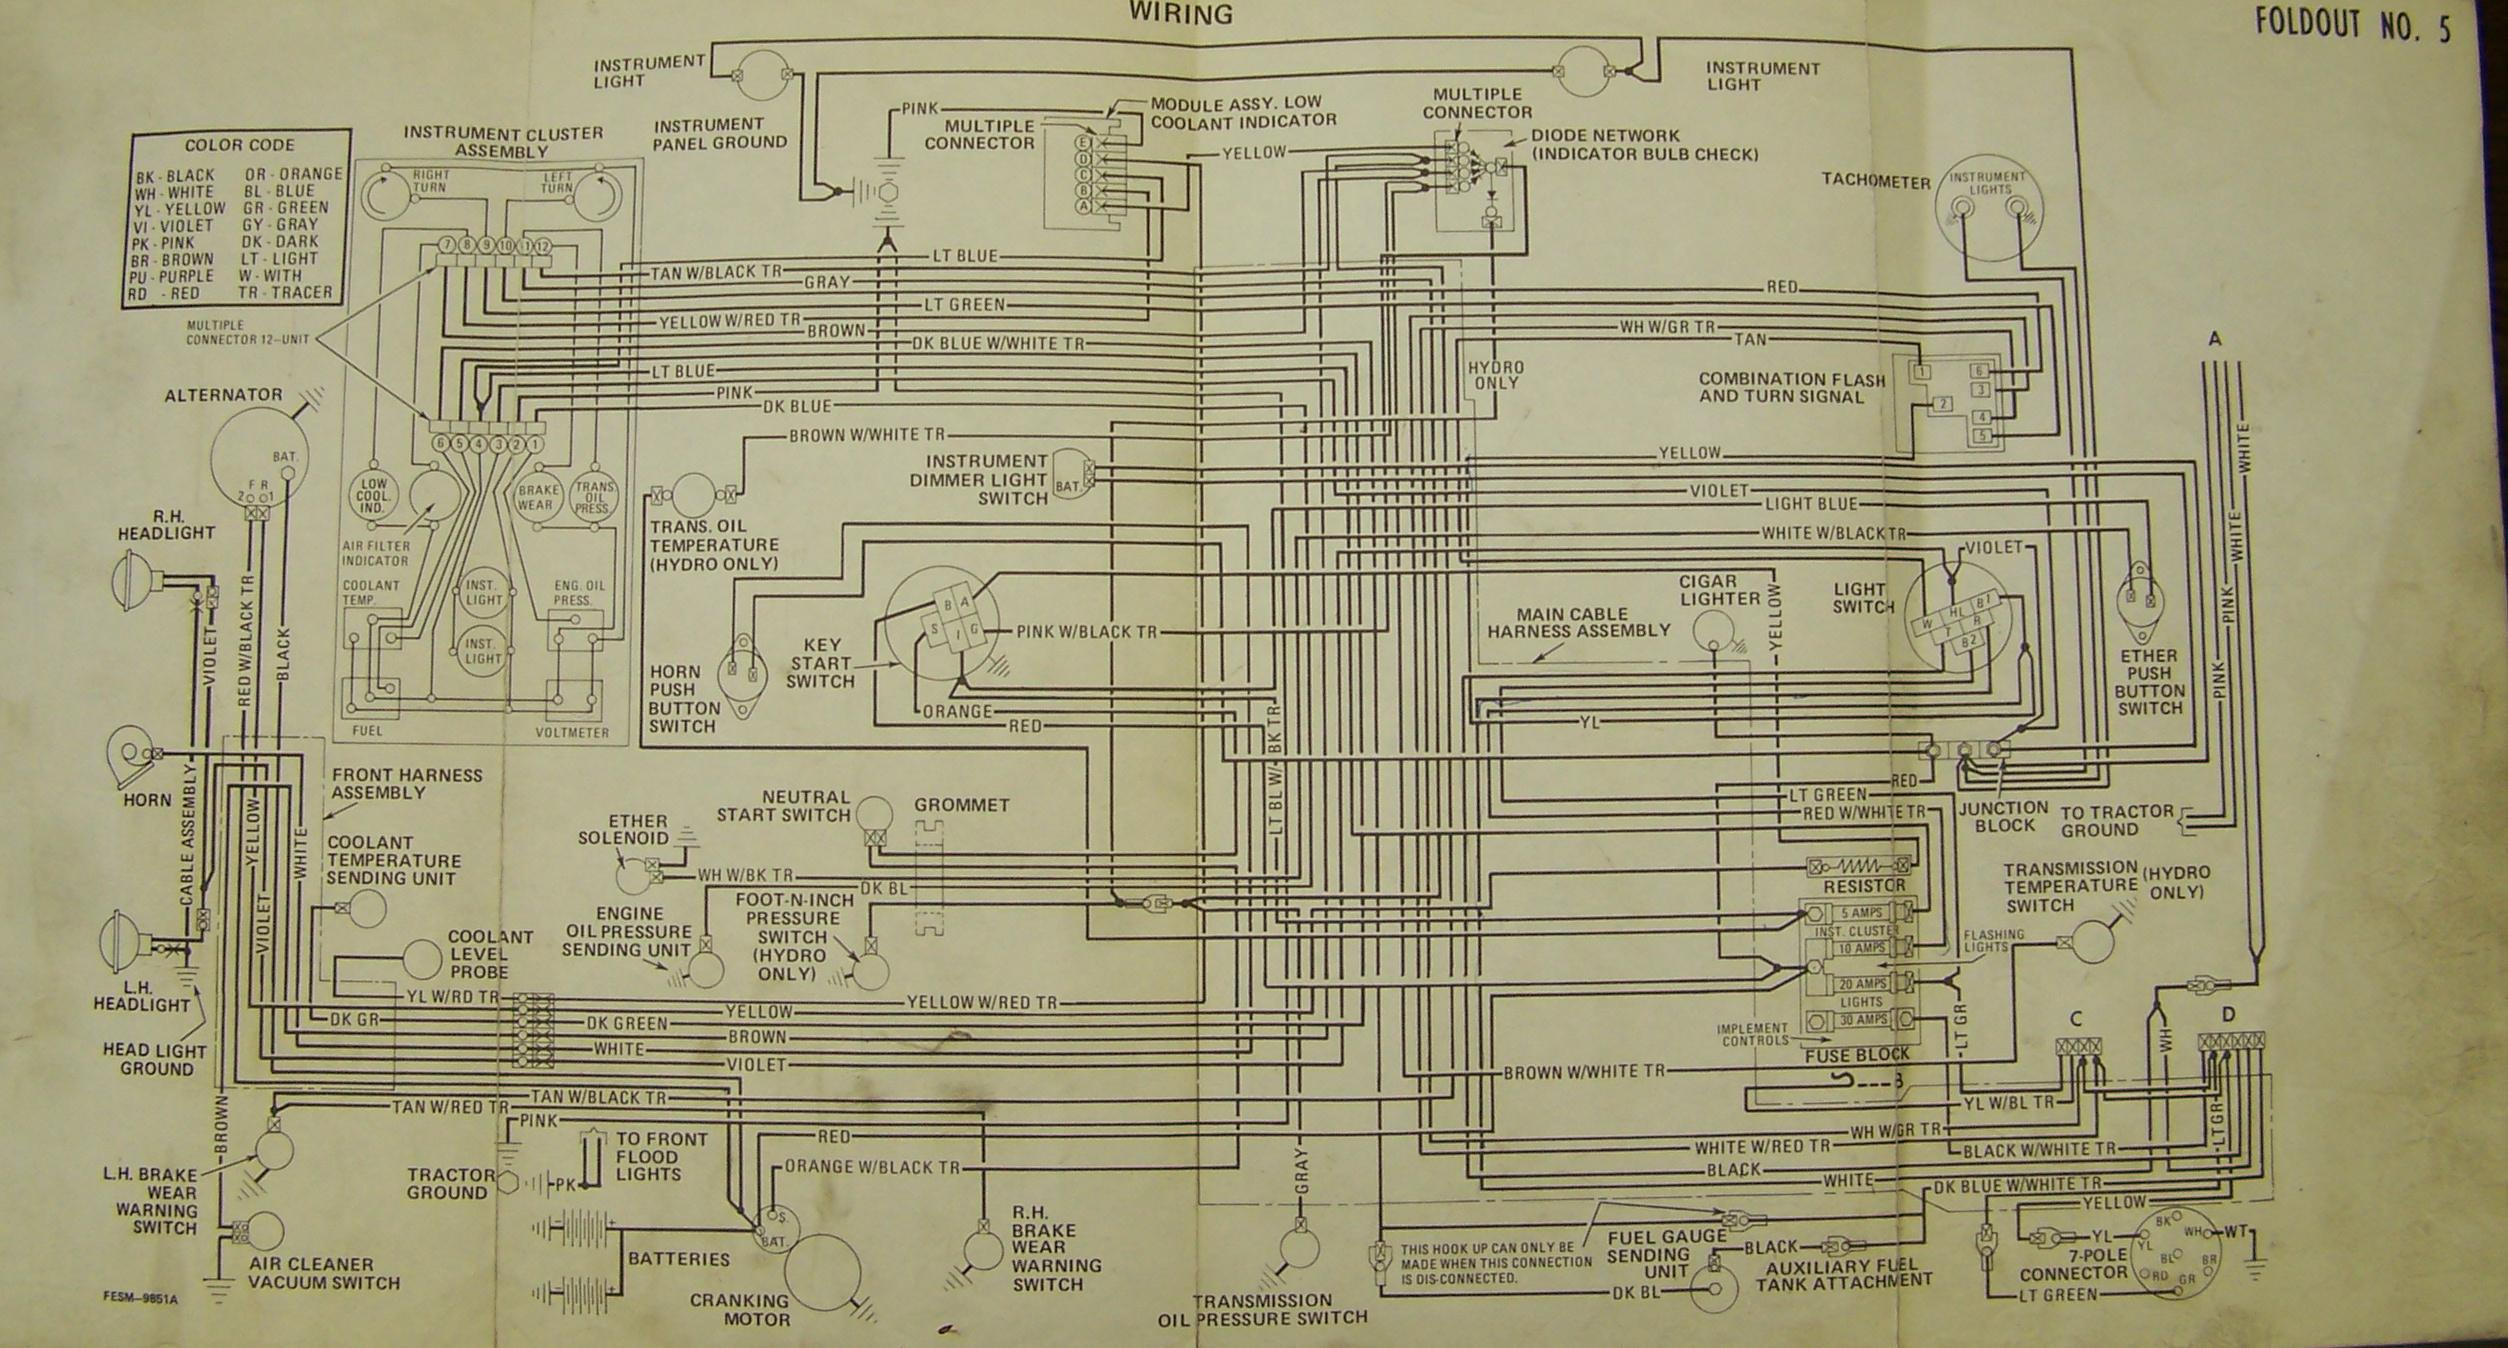 86series5 carter & gruenewald co inc ih farmall tractor electrical international tractor wiring diagram at mifinder.co